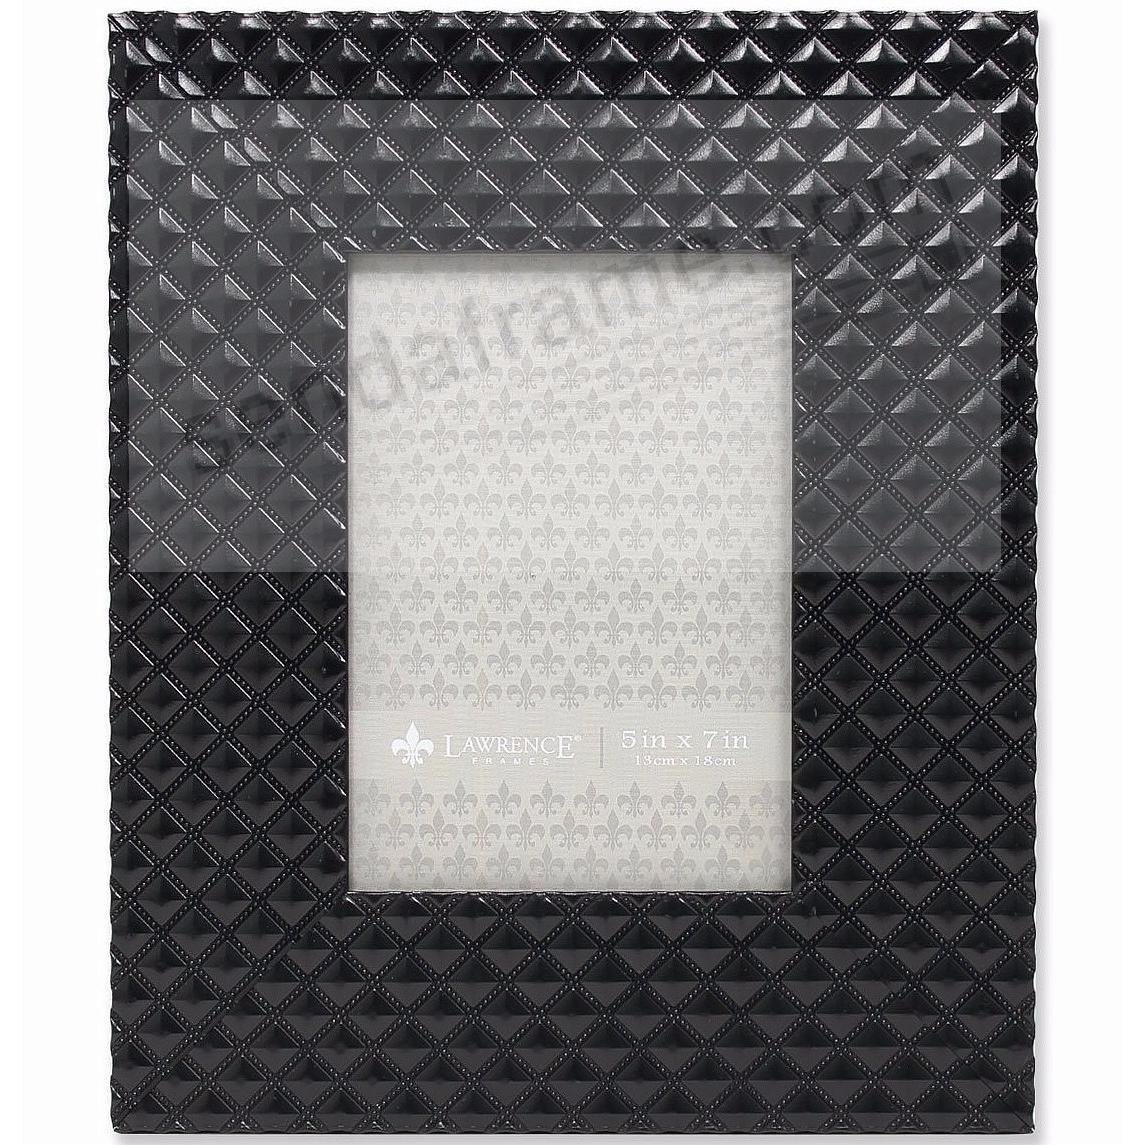 DIAMOND PATTERN 5x7 Frame by Lawrence® - Picture Frames, Photo ...